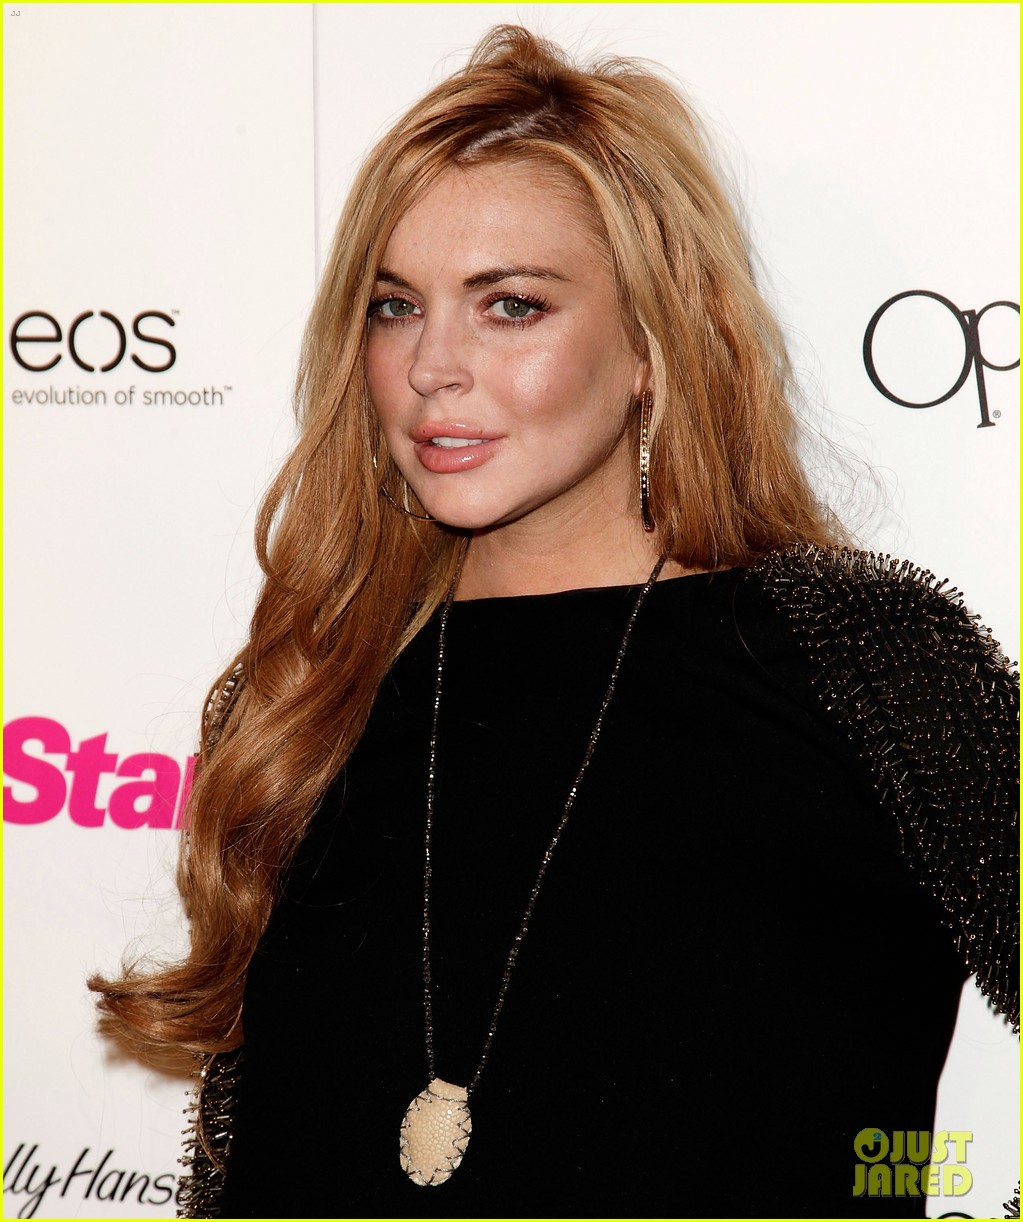 lindsay lohan star magazines all hollywood party 112653553